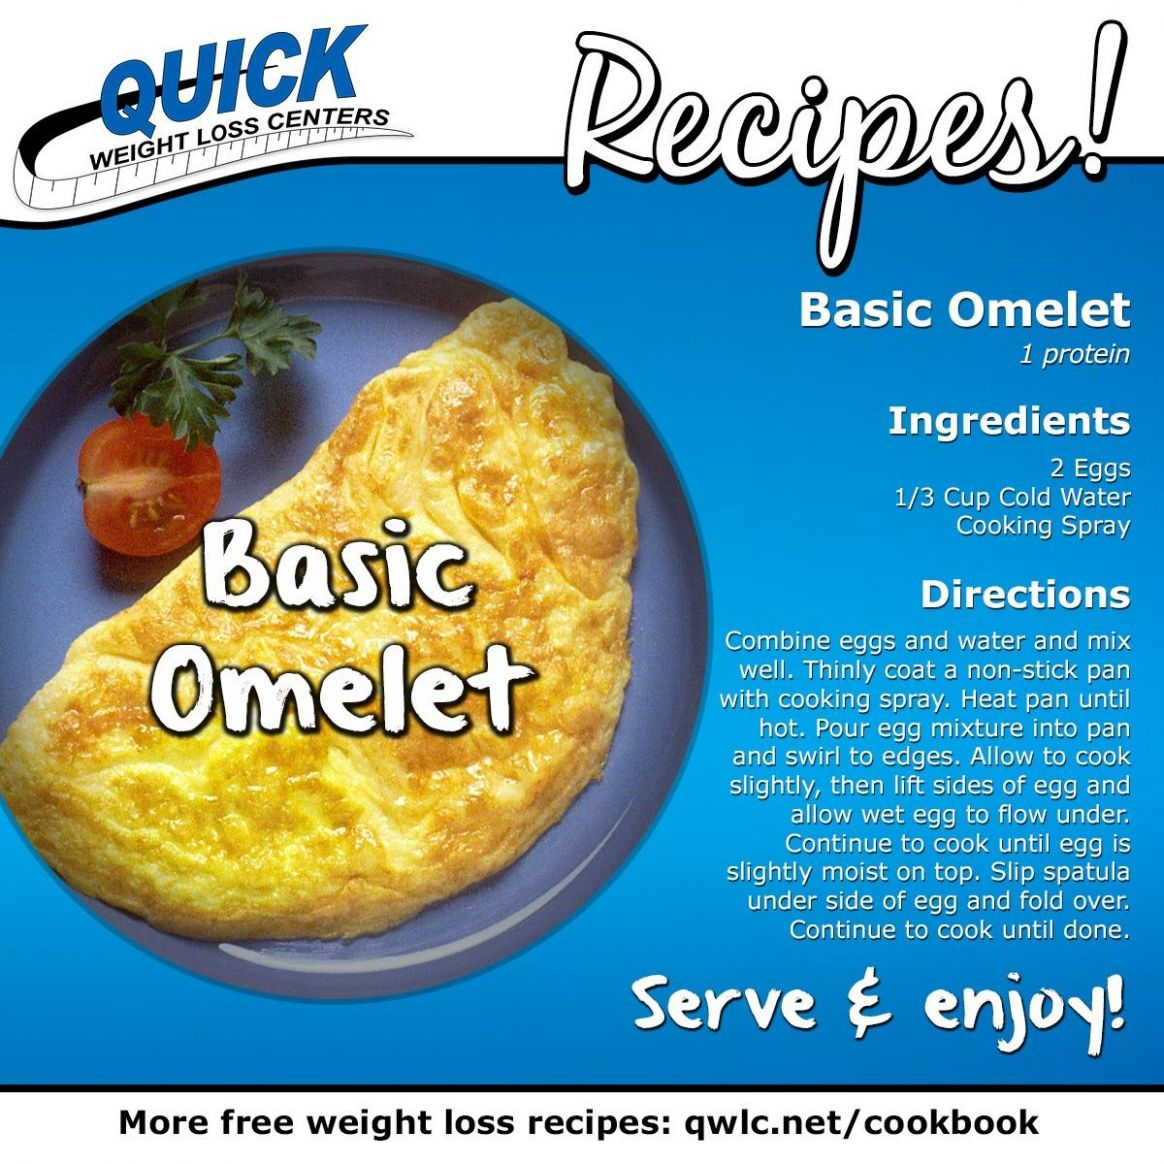 Pin on Quick Weightloss - Recipes For Quick Weight Loss Centers